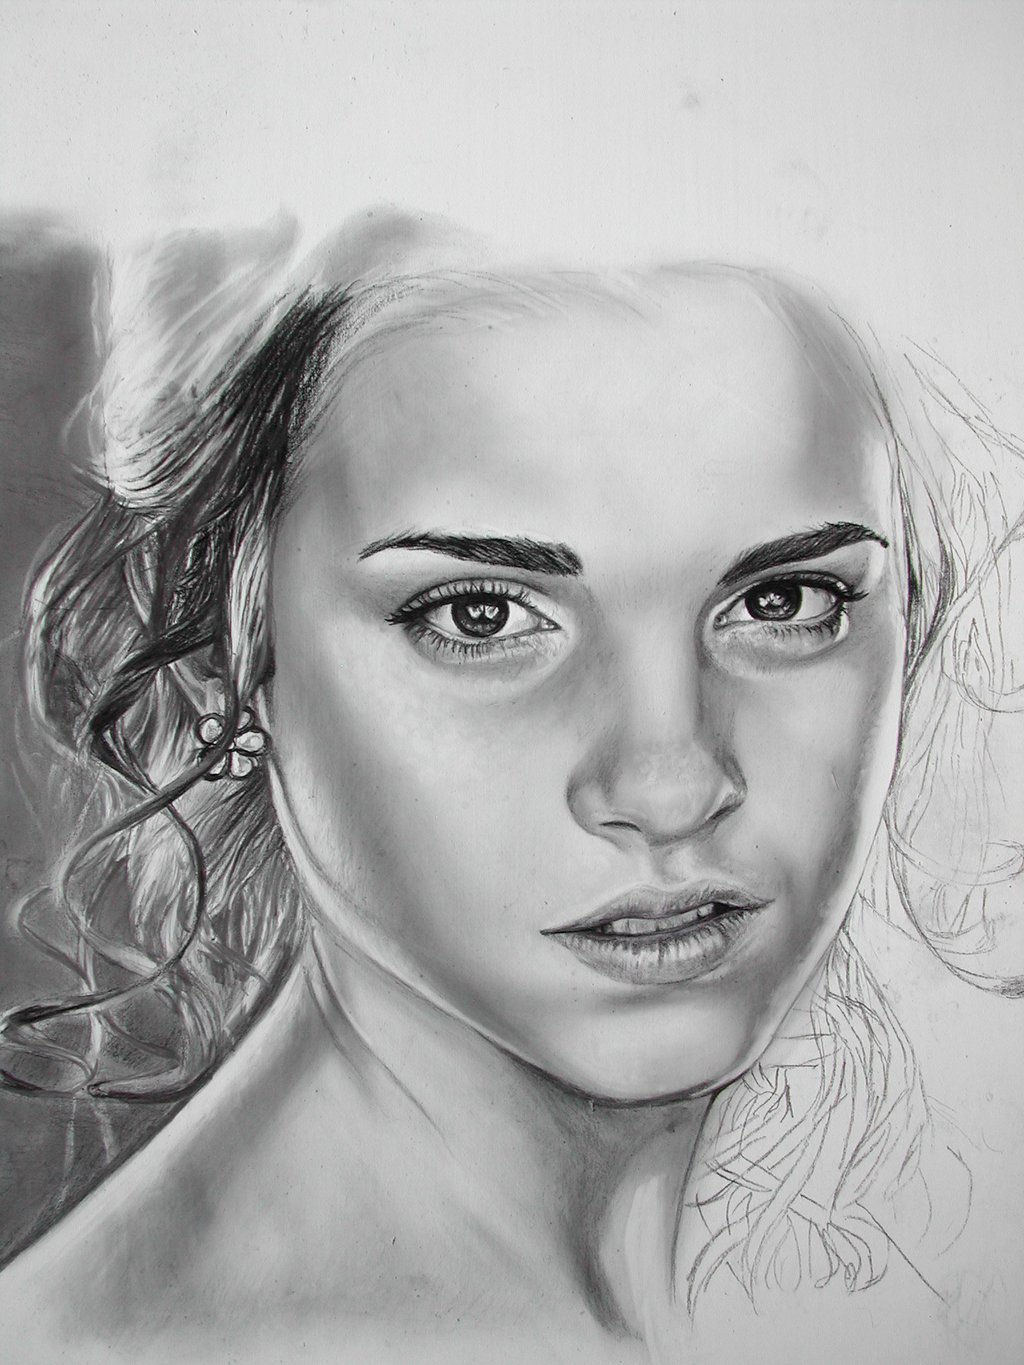 Scribble Pencil Drawings : Simple pencil sketches of people imgkid the